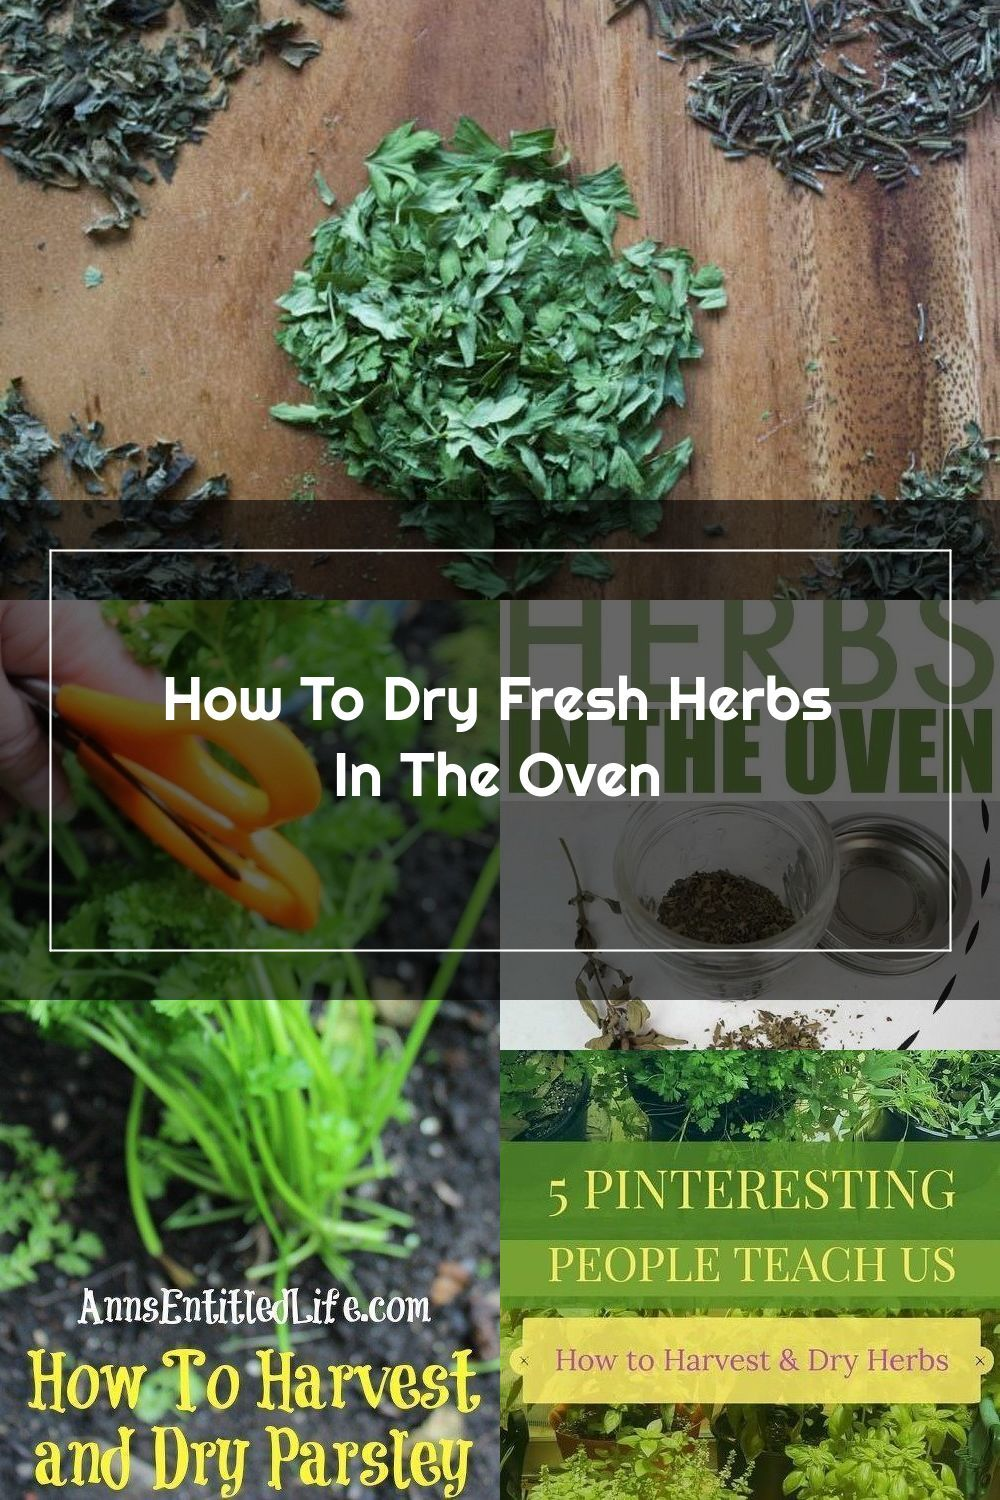 How To Dry Fresh Herbs In The Oven Have Your Own Dried Herbs In A Little Over An Hour These Instructions Are So Easy To In 2020 Drying Herbs Herbs Drying